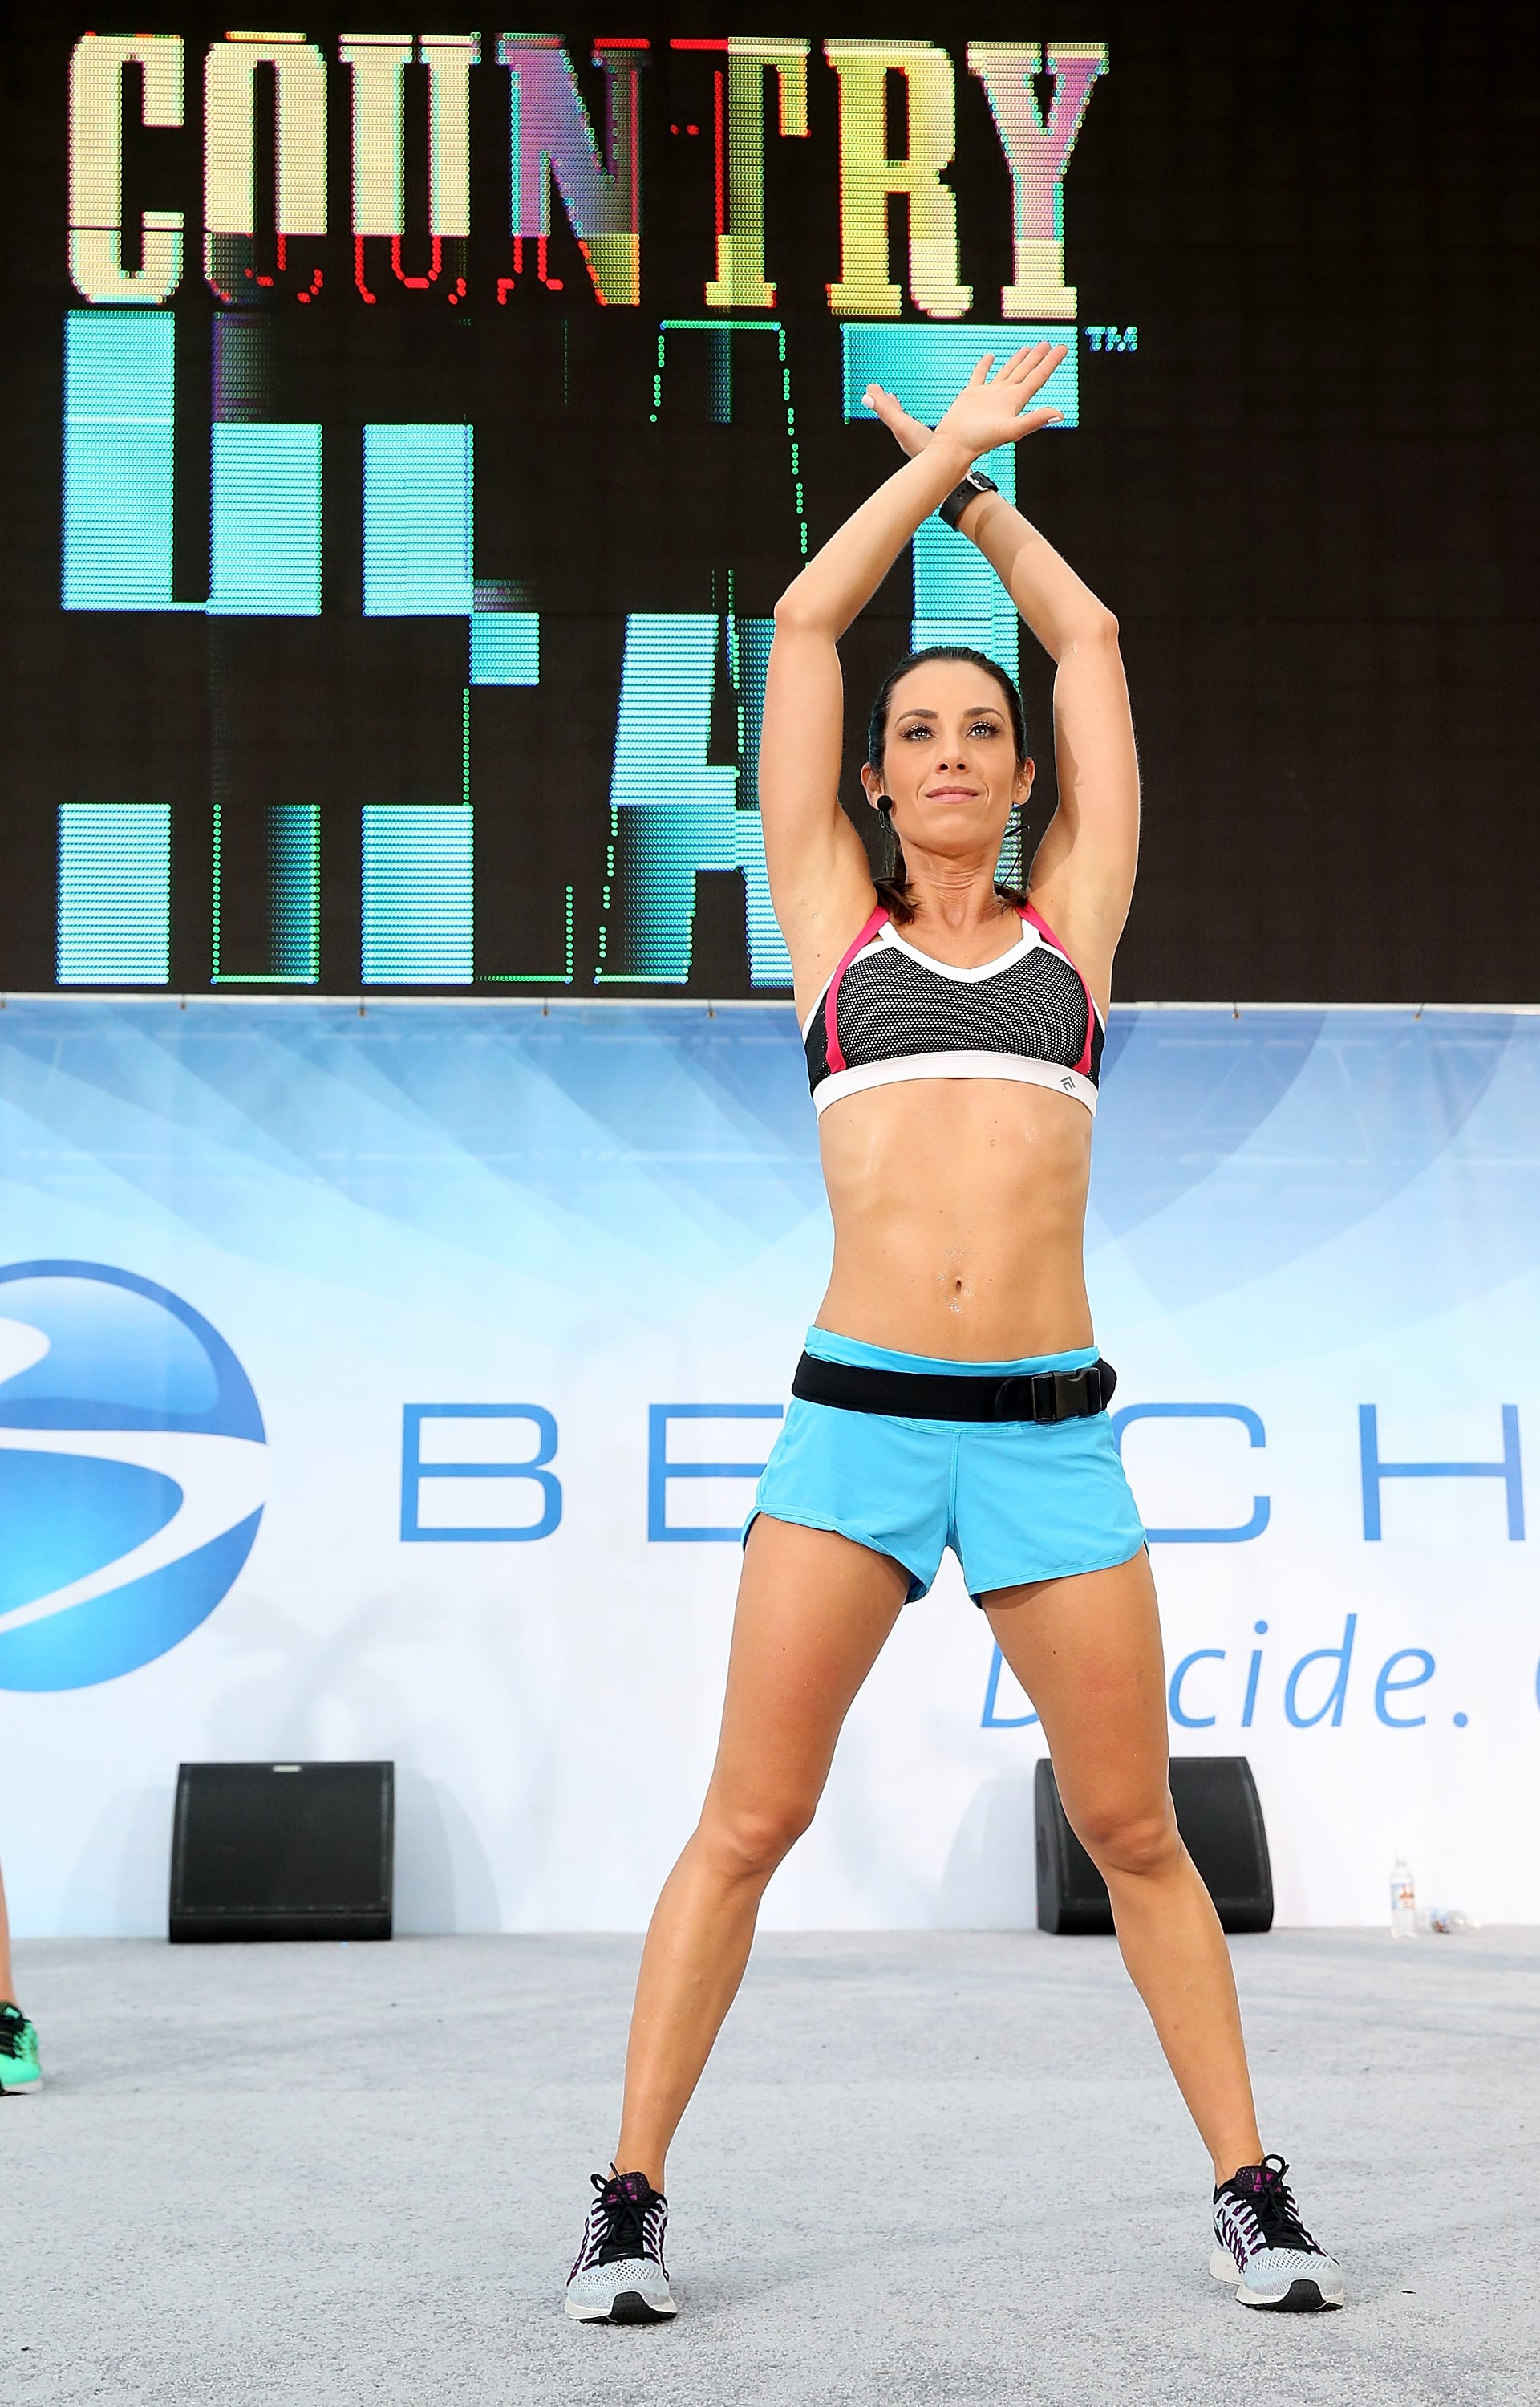 This Beachbody Trainer Shares Her Favorite Core Exercises For Chiseled Abs